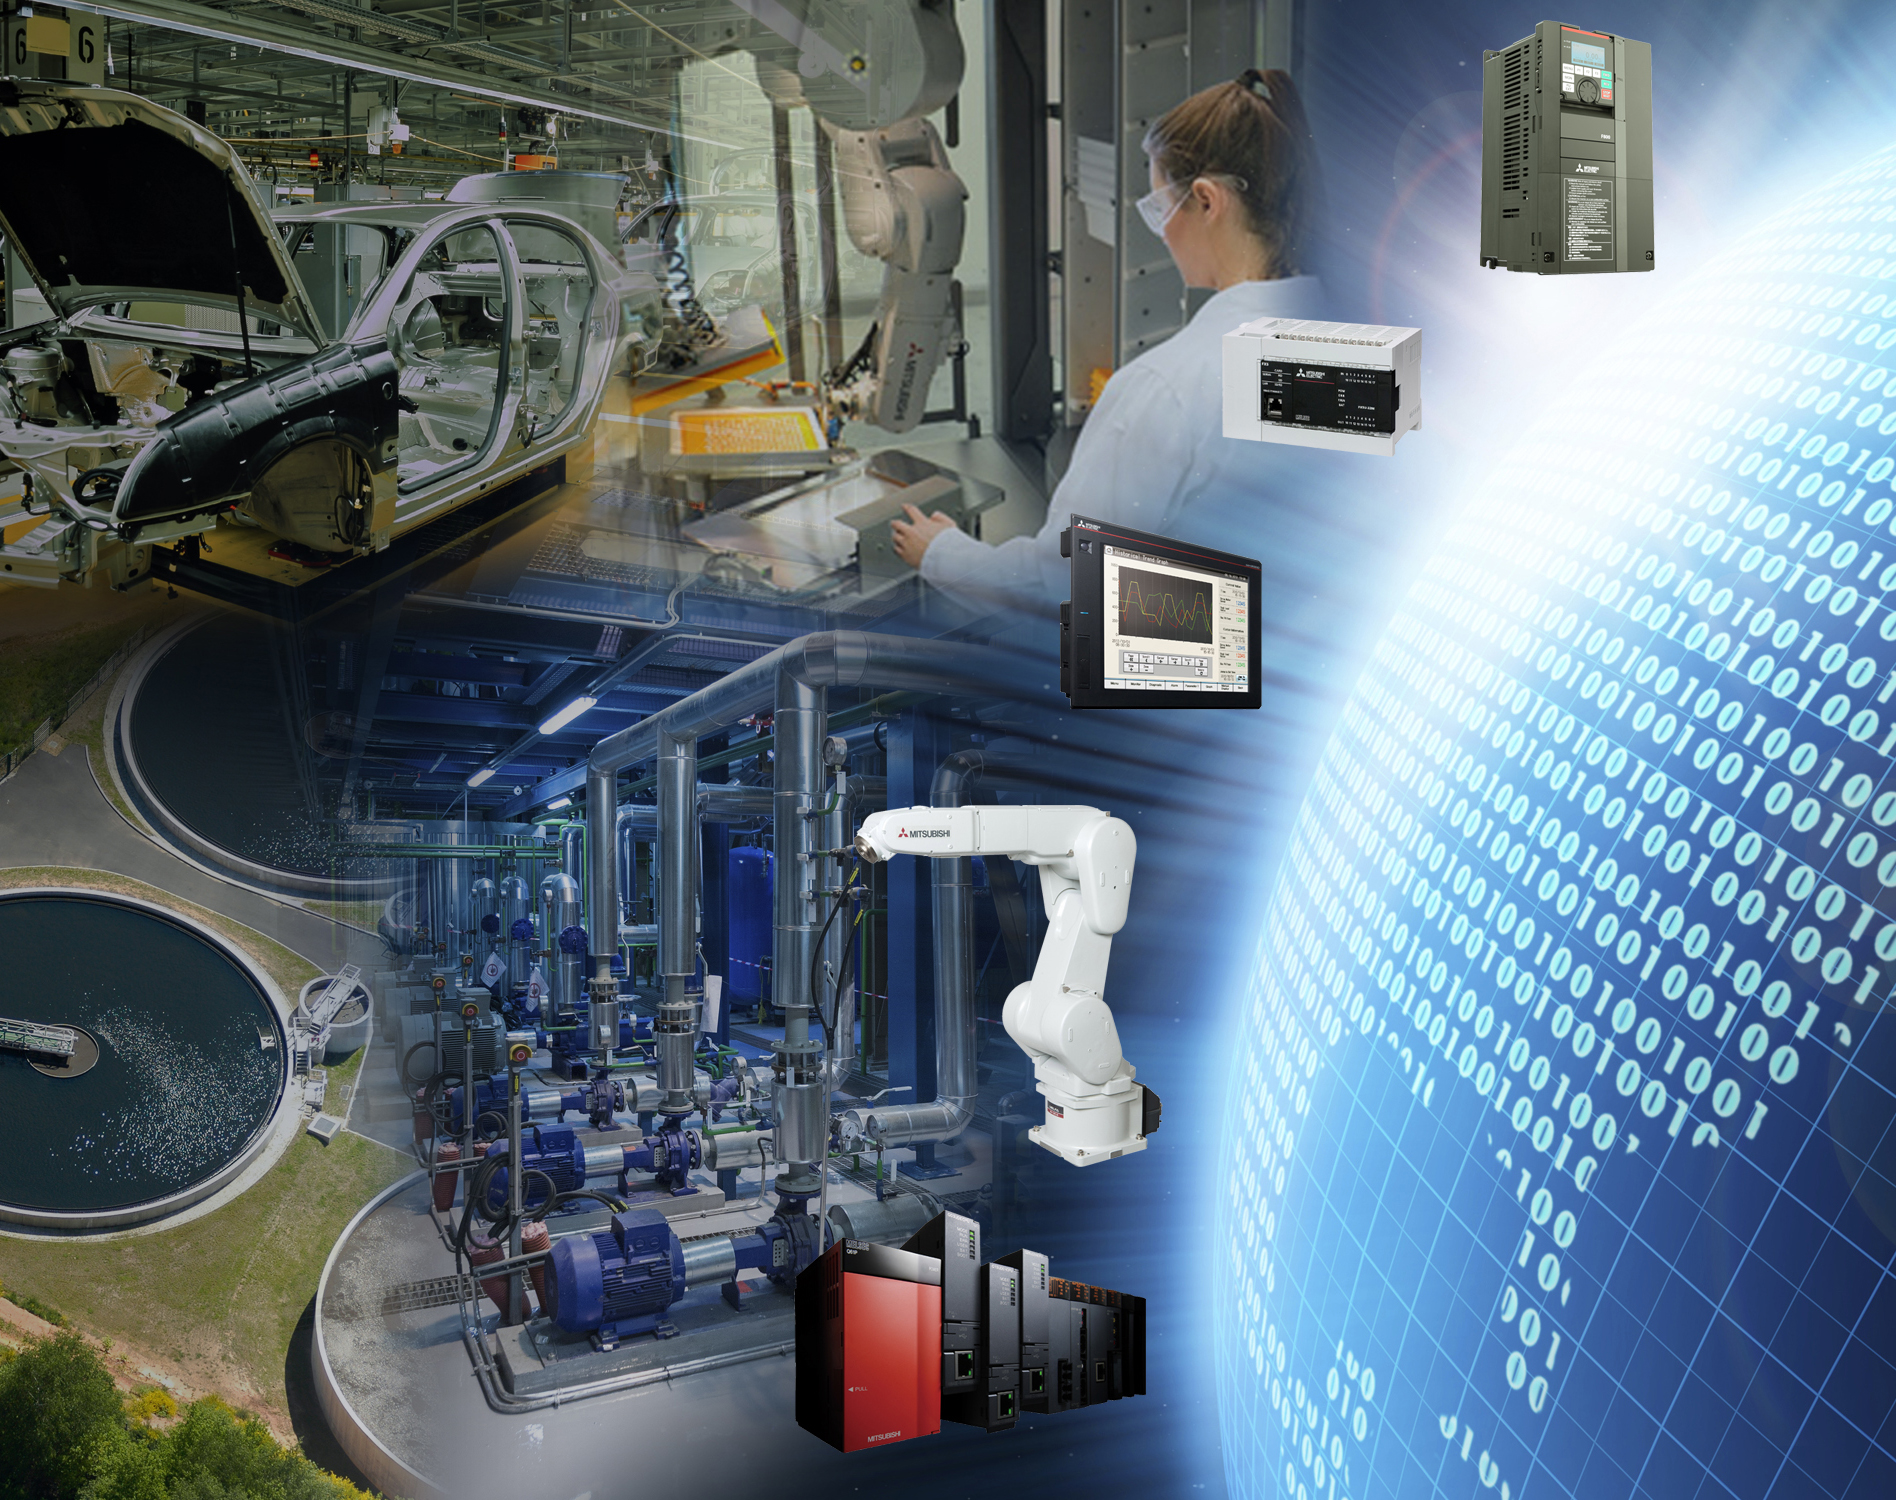 Industry 4.0 Summit highlights plant floor to IT level integration